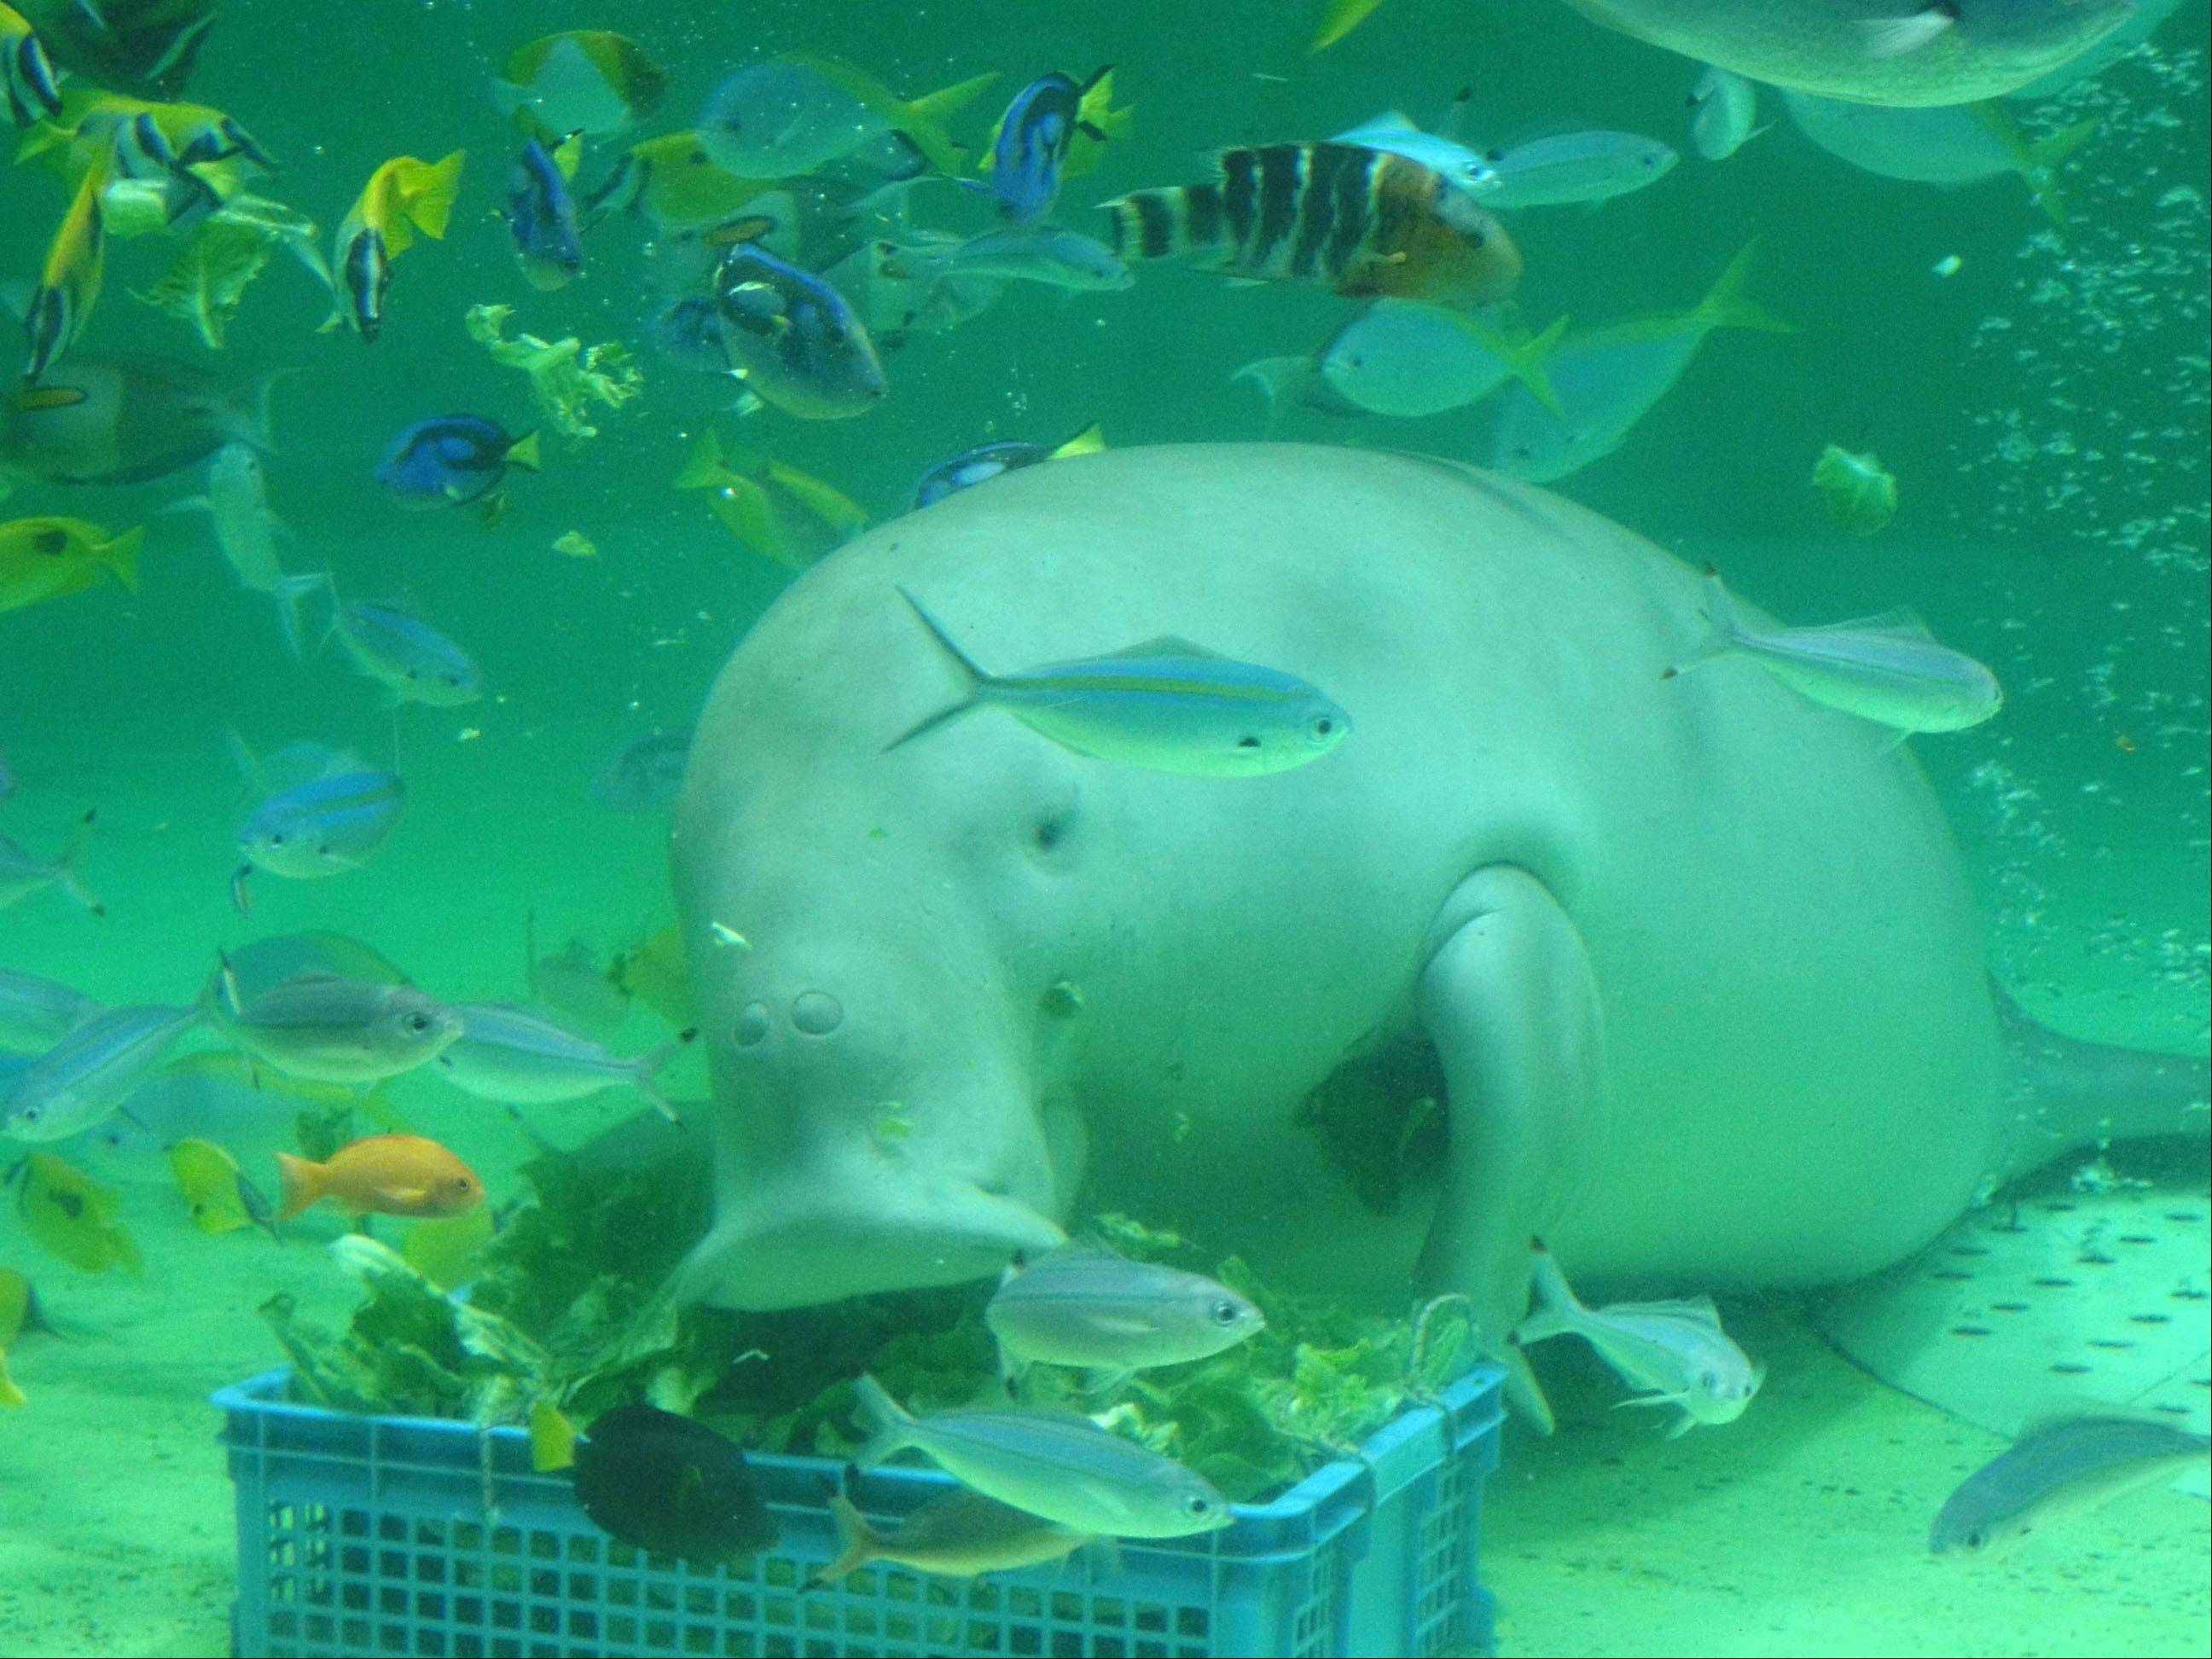 Serena, a dugong at the Toba Aquarium in Toba, Japan, is a popular sight.